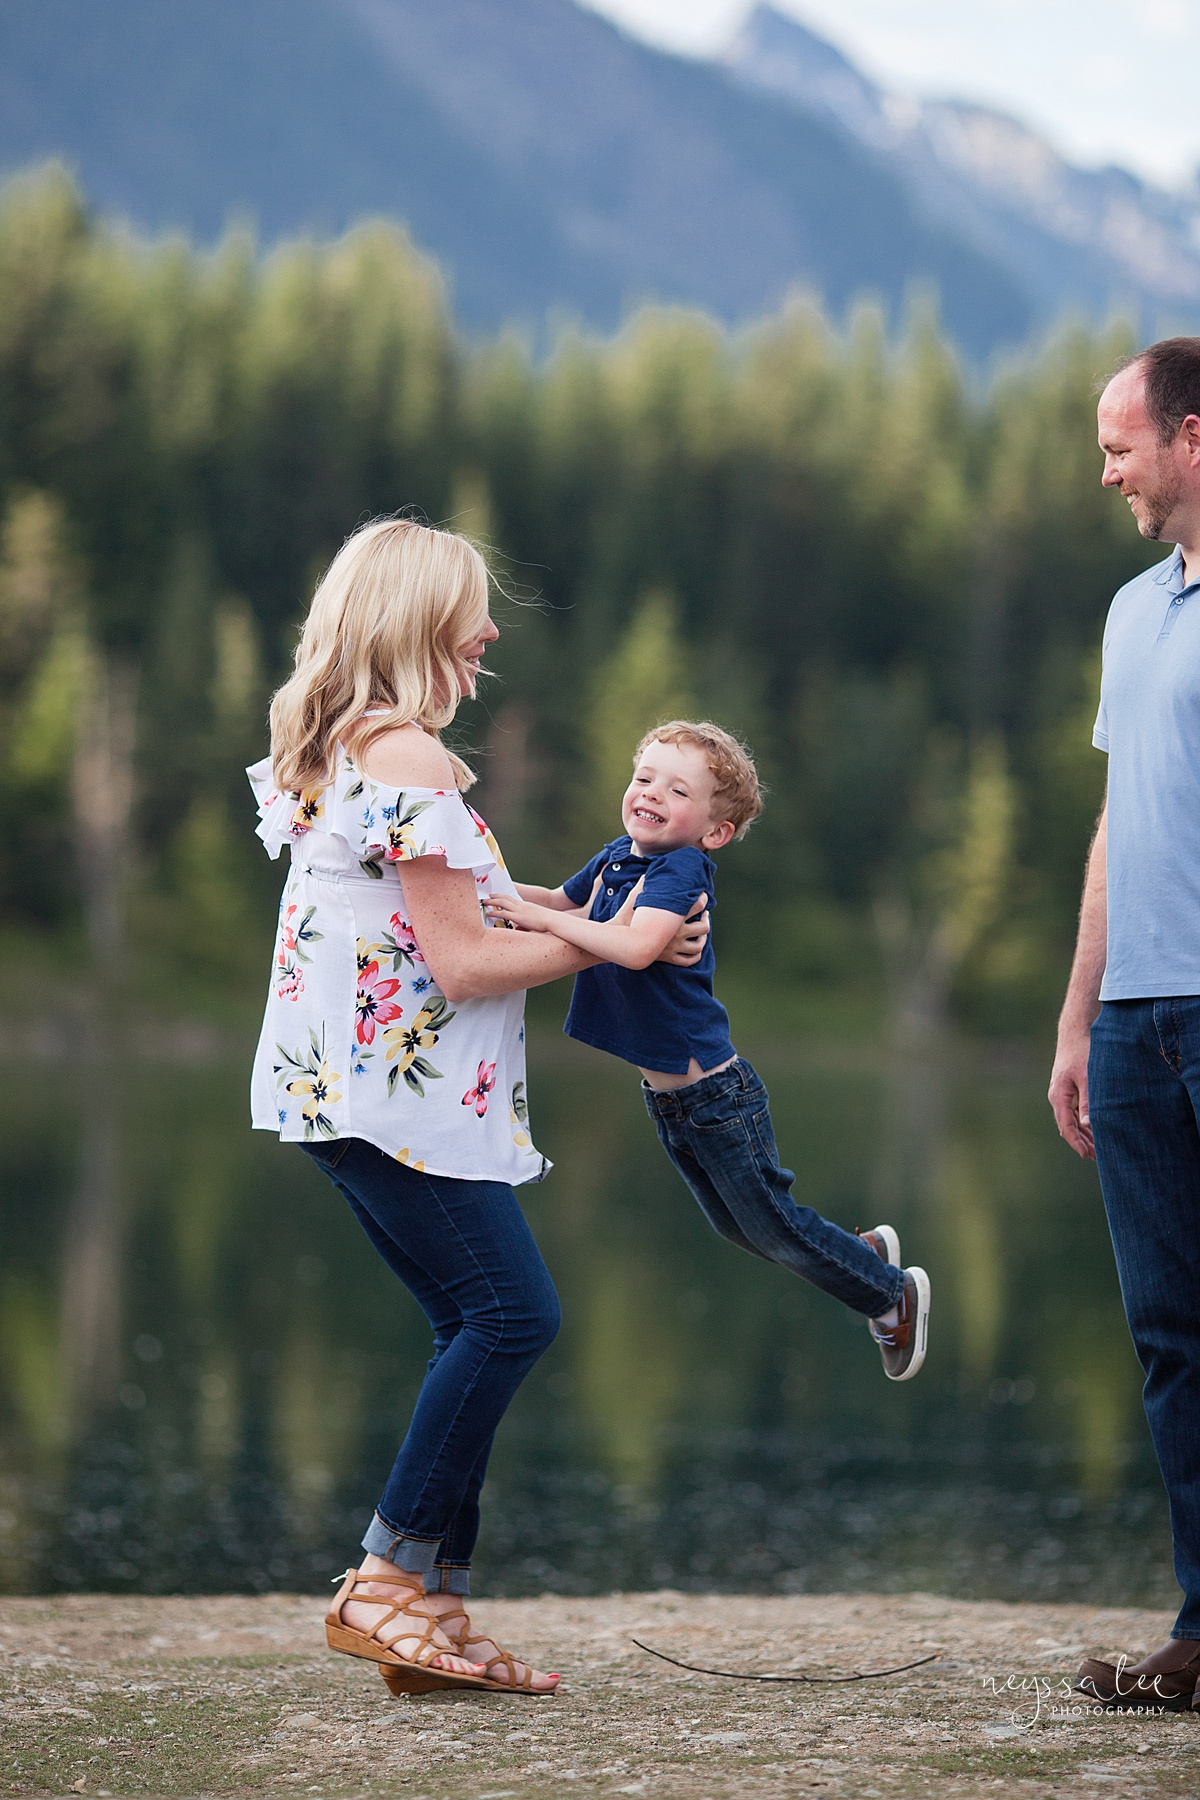 Maternity Photos in the Mountains, Gold Creek Pond, Neyssa Lee Photography, Snoqualmie Family Photographer, Pregnant Mom spins with son